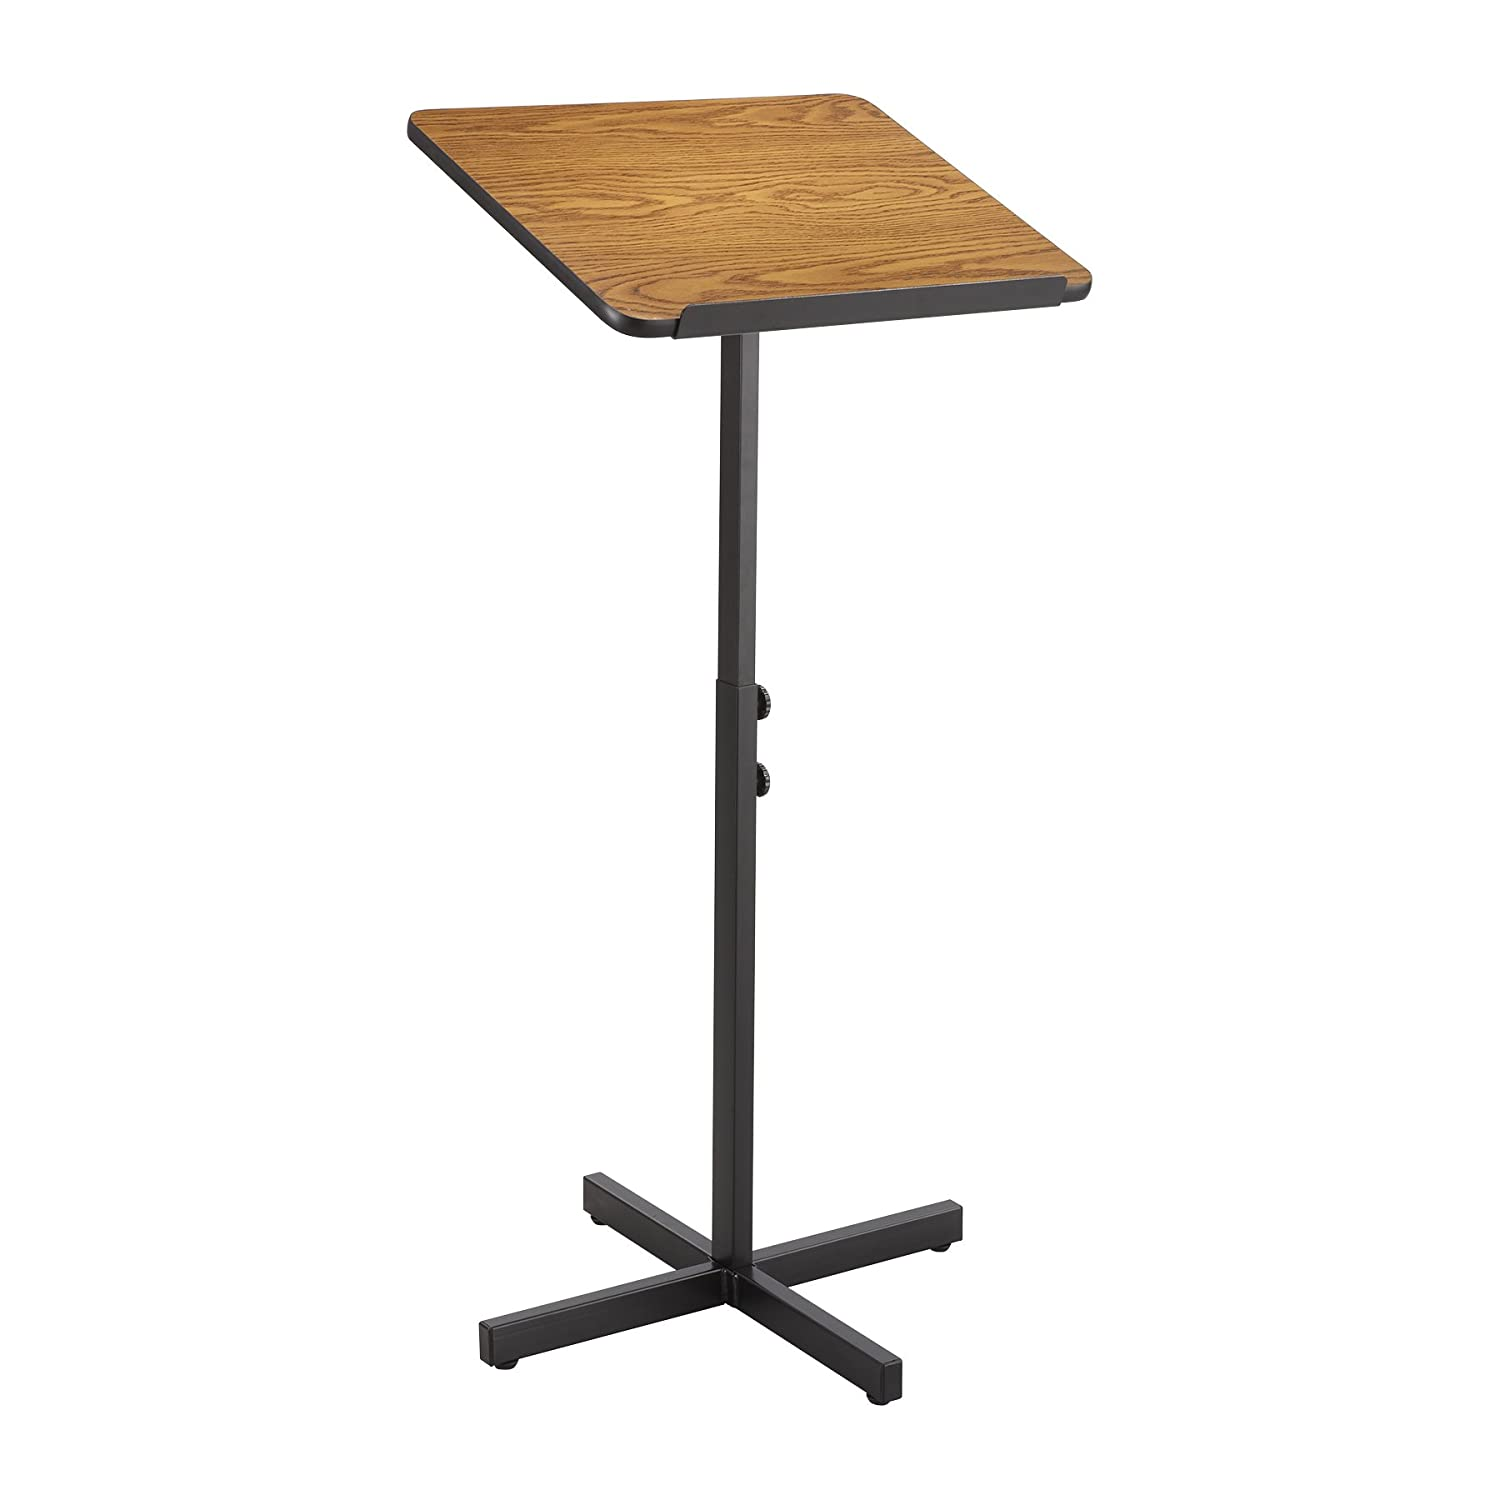 Safco Adjustable Speaker Stand - Medium Oak 8921MO